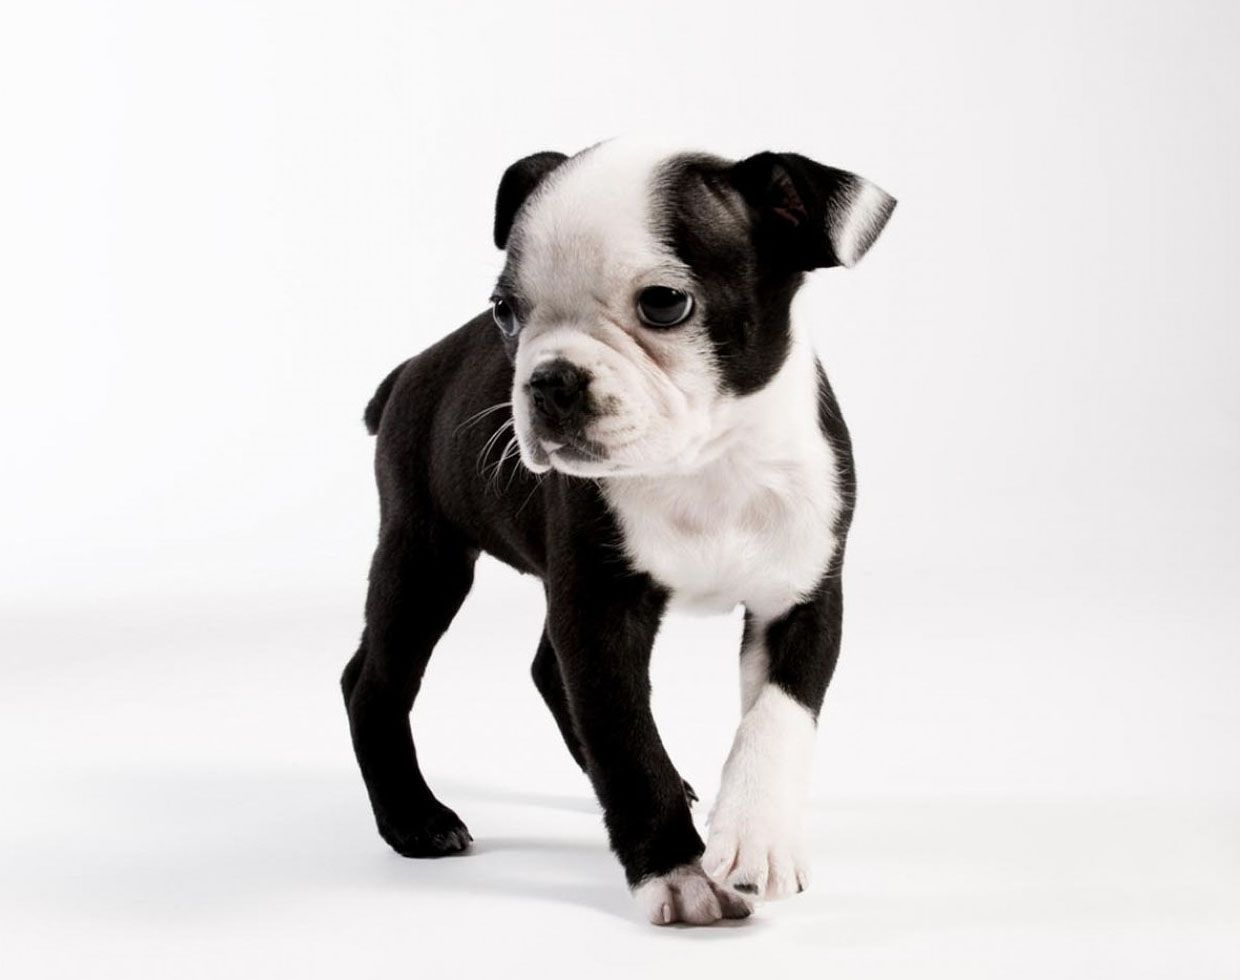 High Resolution Wallpaper of a Boston Terrier Puppy